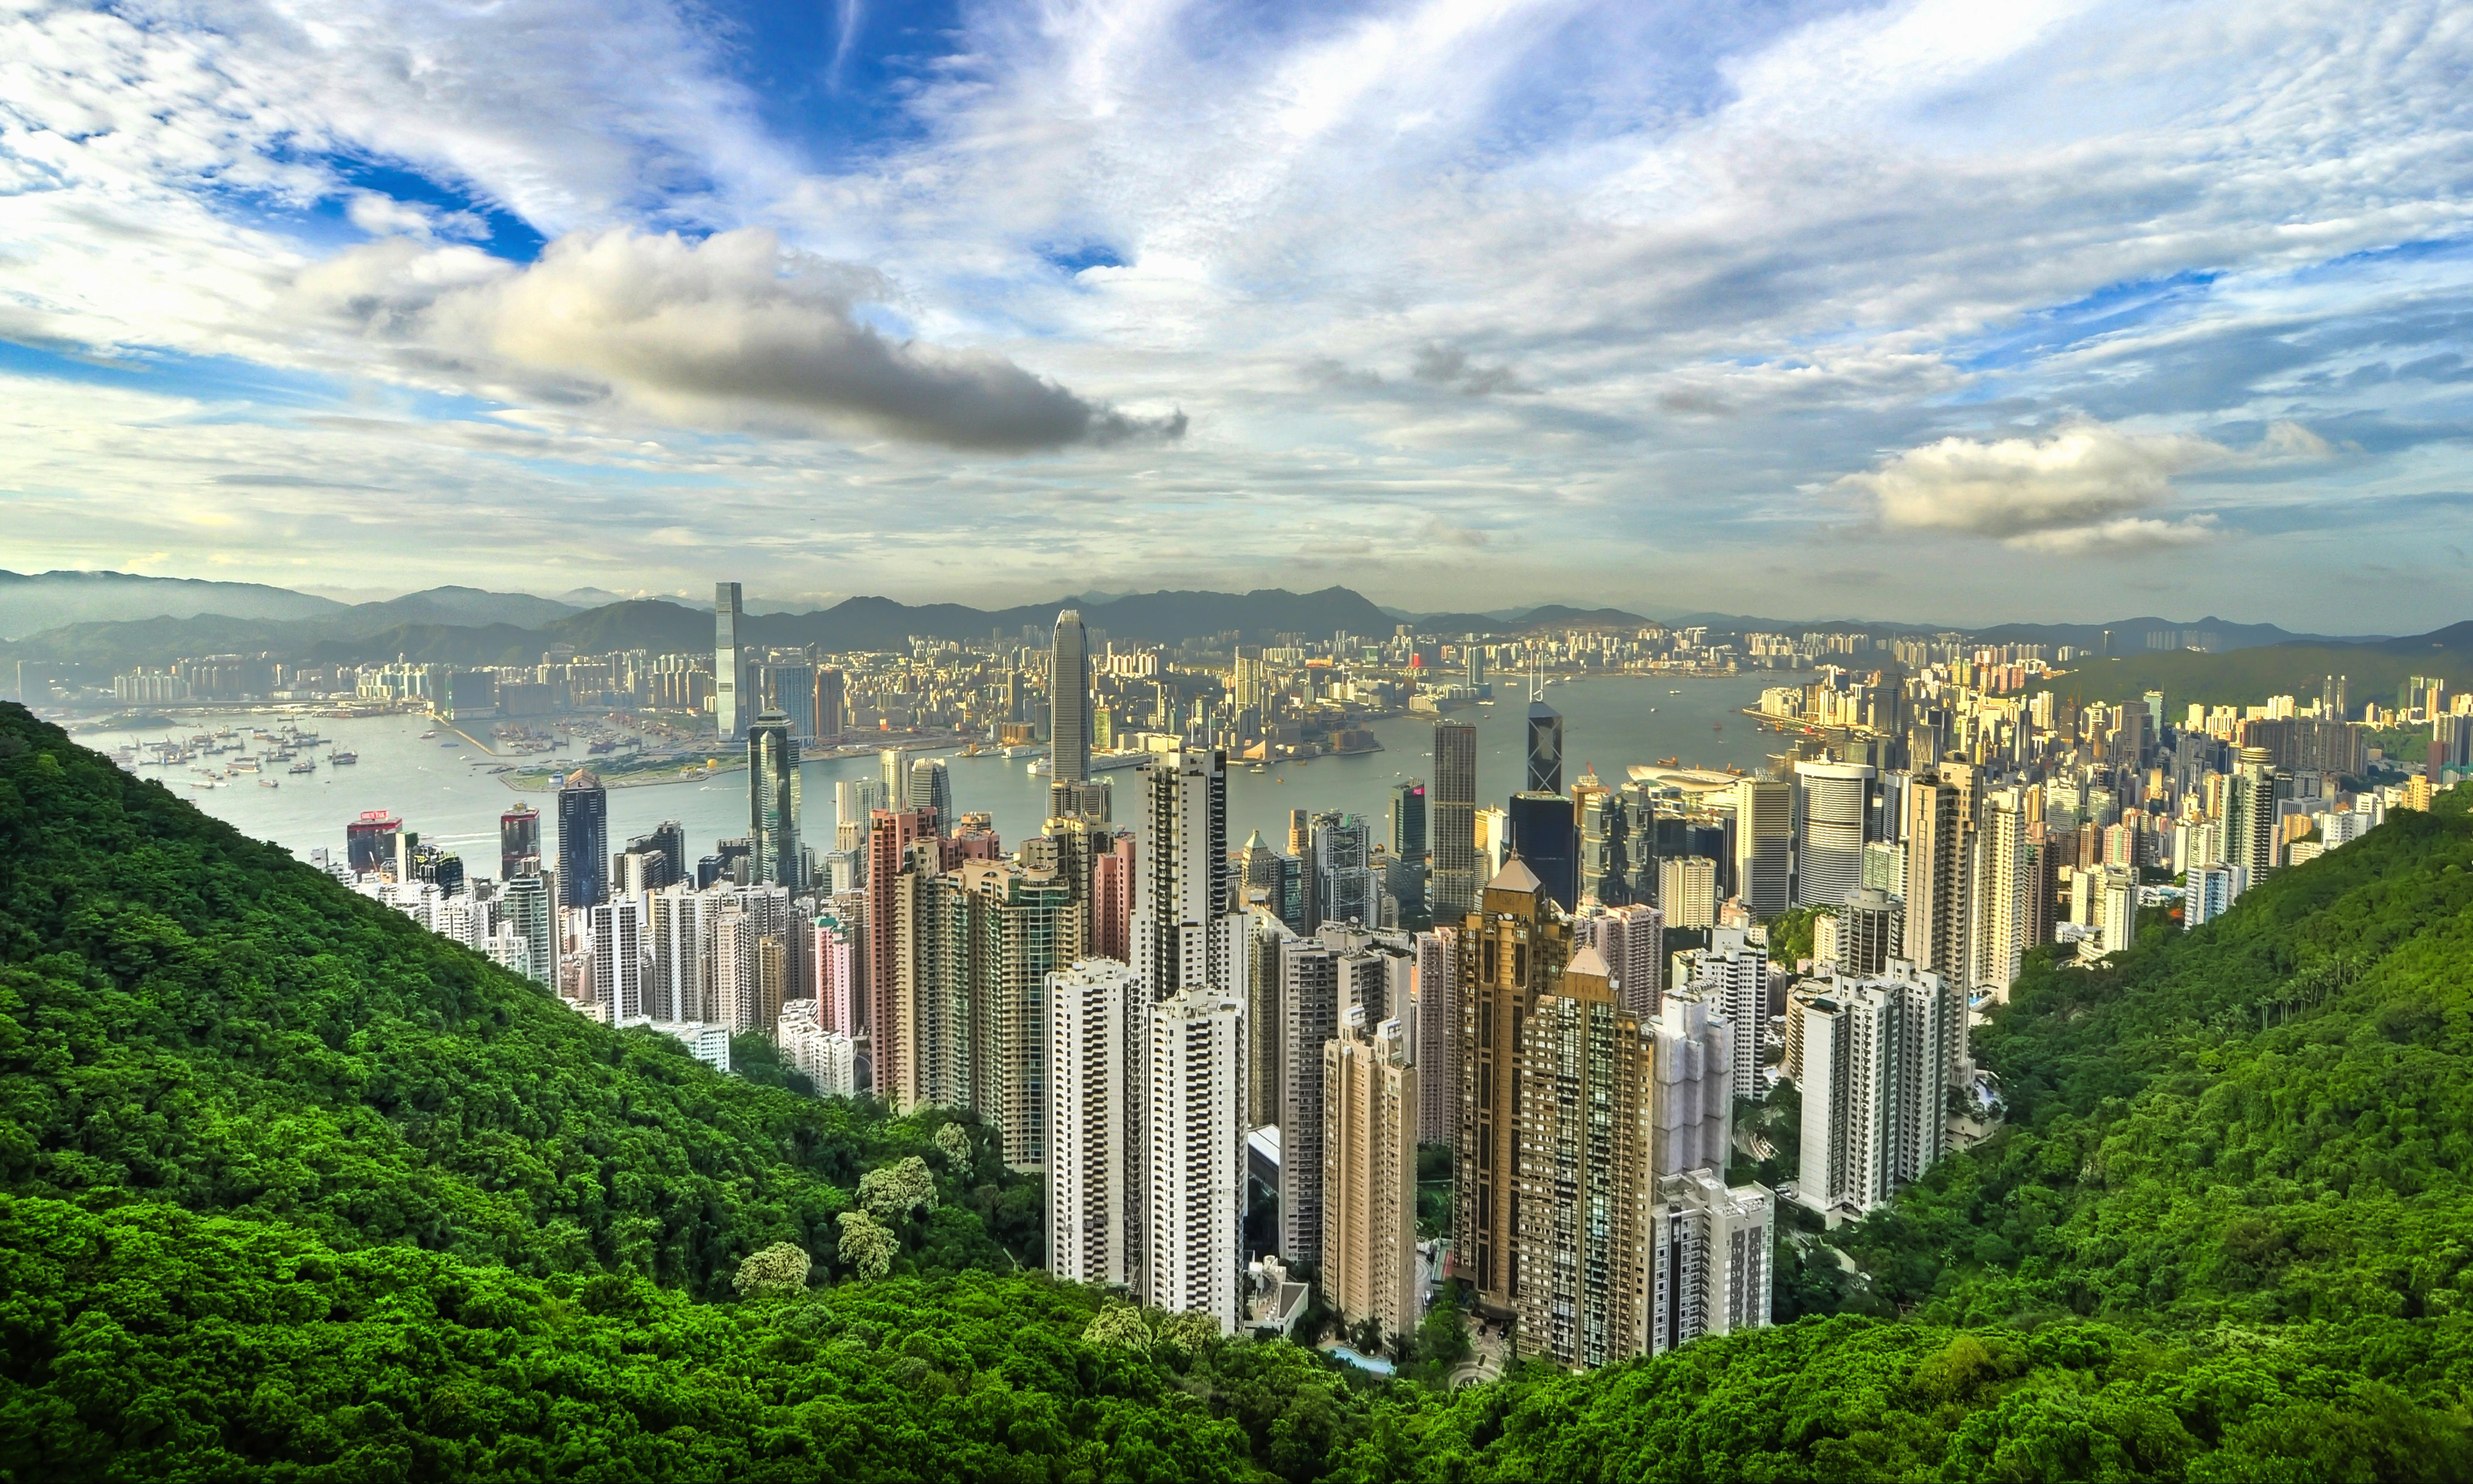 Hong Kong – city walking guide: Victoria Peak to Admiralty